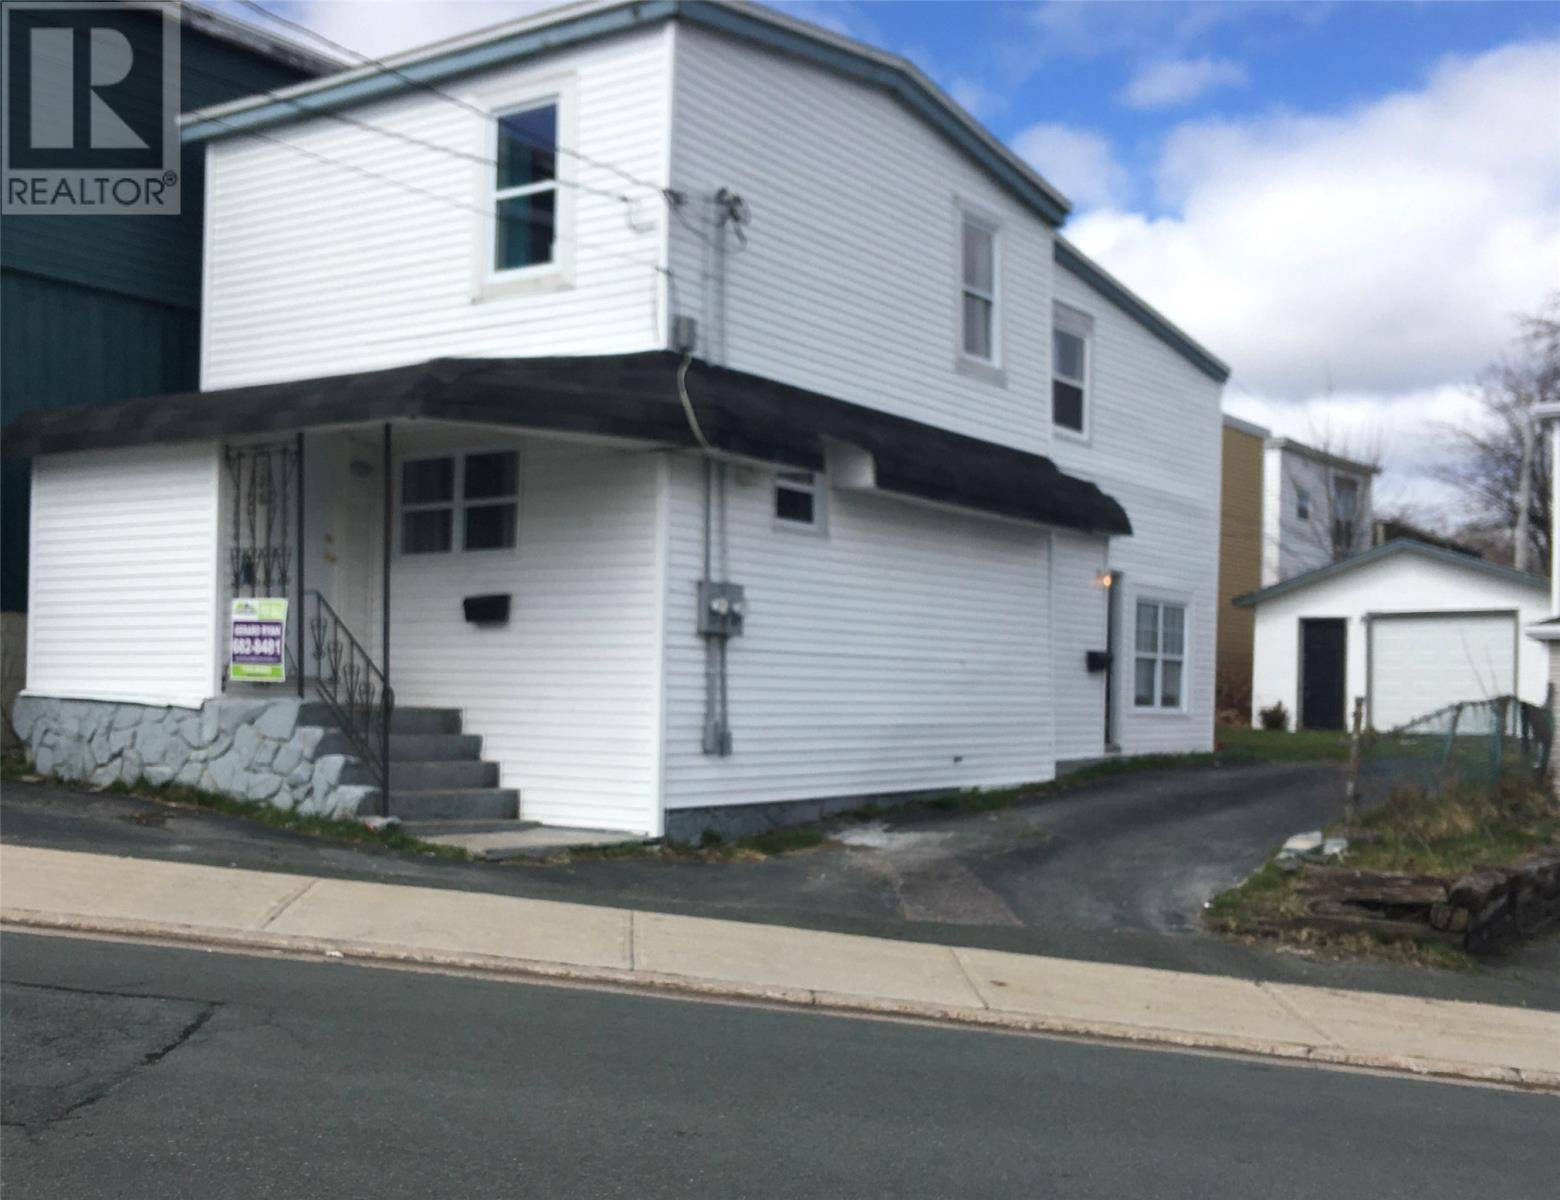 House for sale at 126 Casey St St. John's Newfoundland - MLS: 1207777